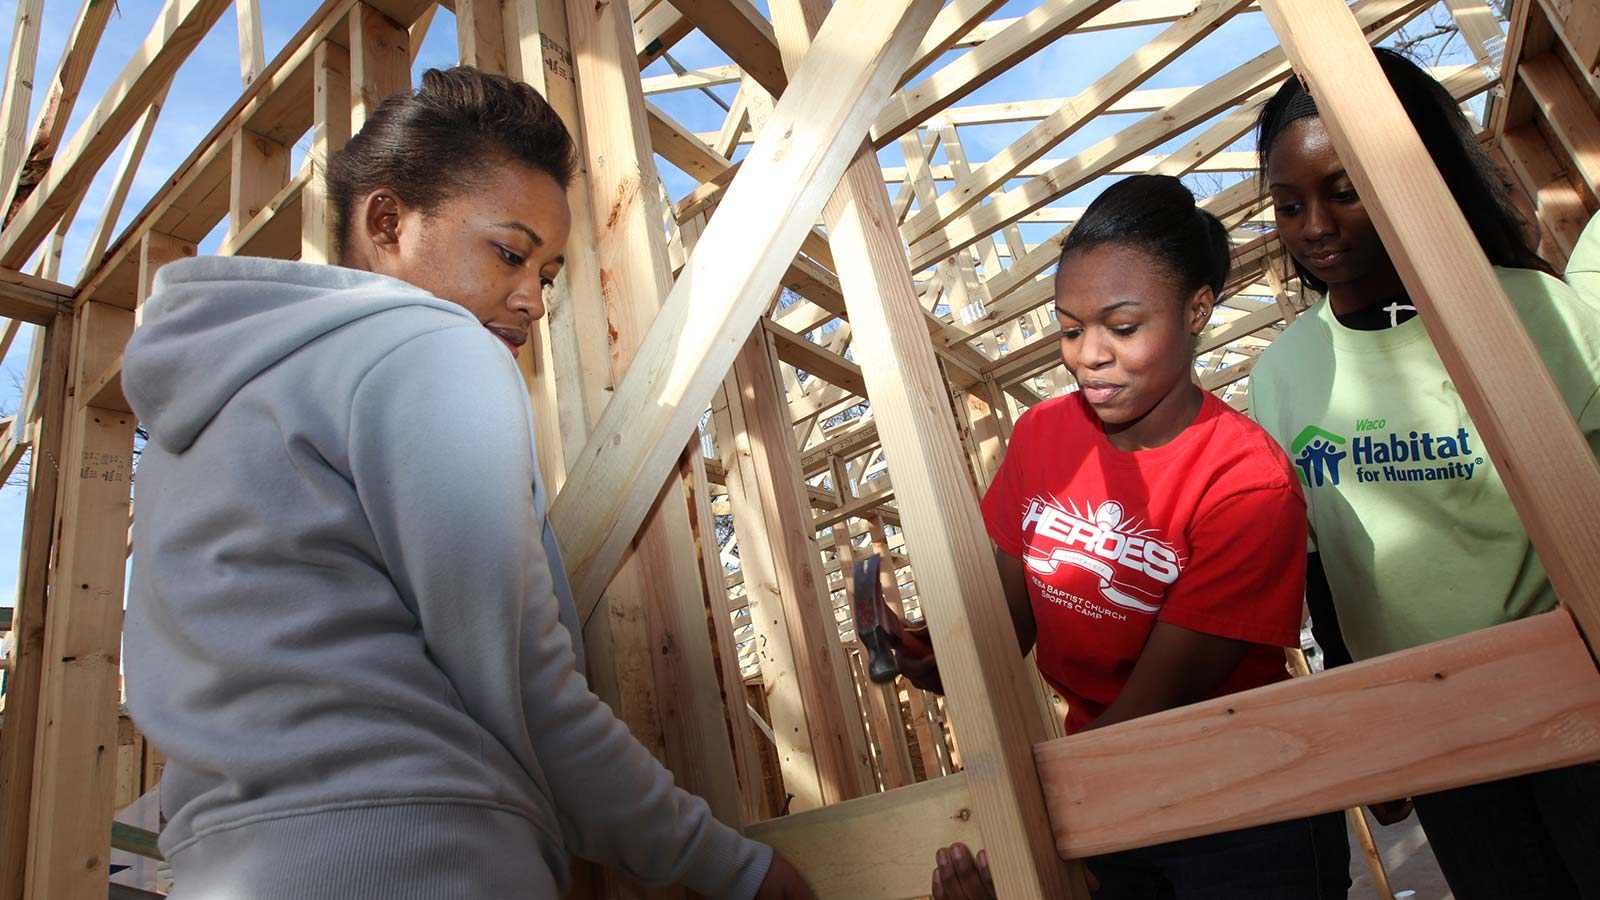 Baylor's Habitat for Humanity chapter was the first collegiate chapter in the country, and it has remained an excellent opportunity for students to reach out and help the local community.